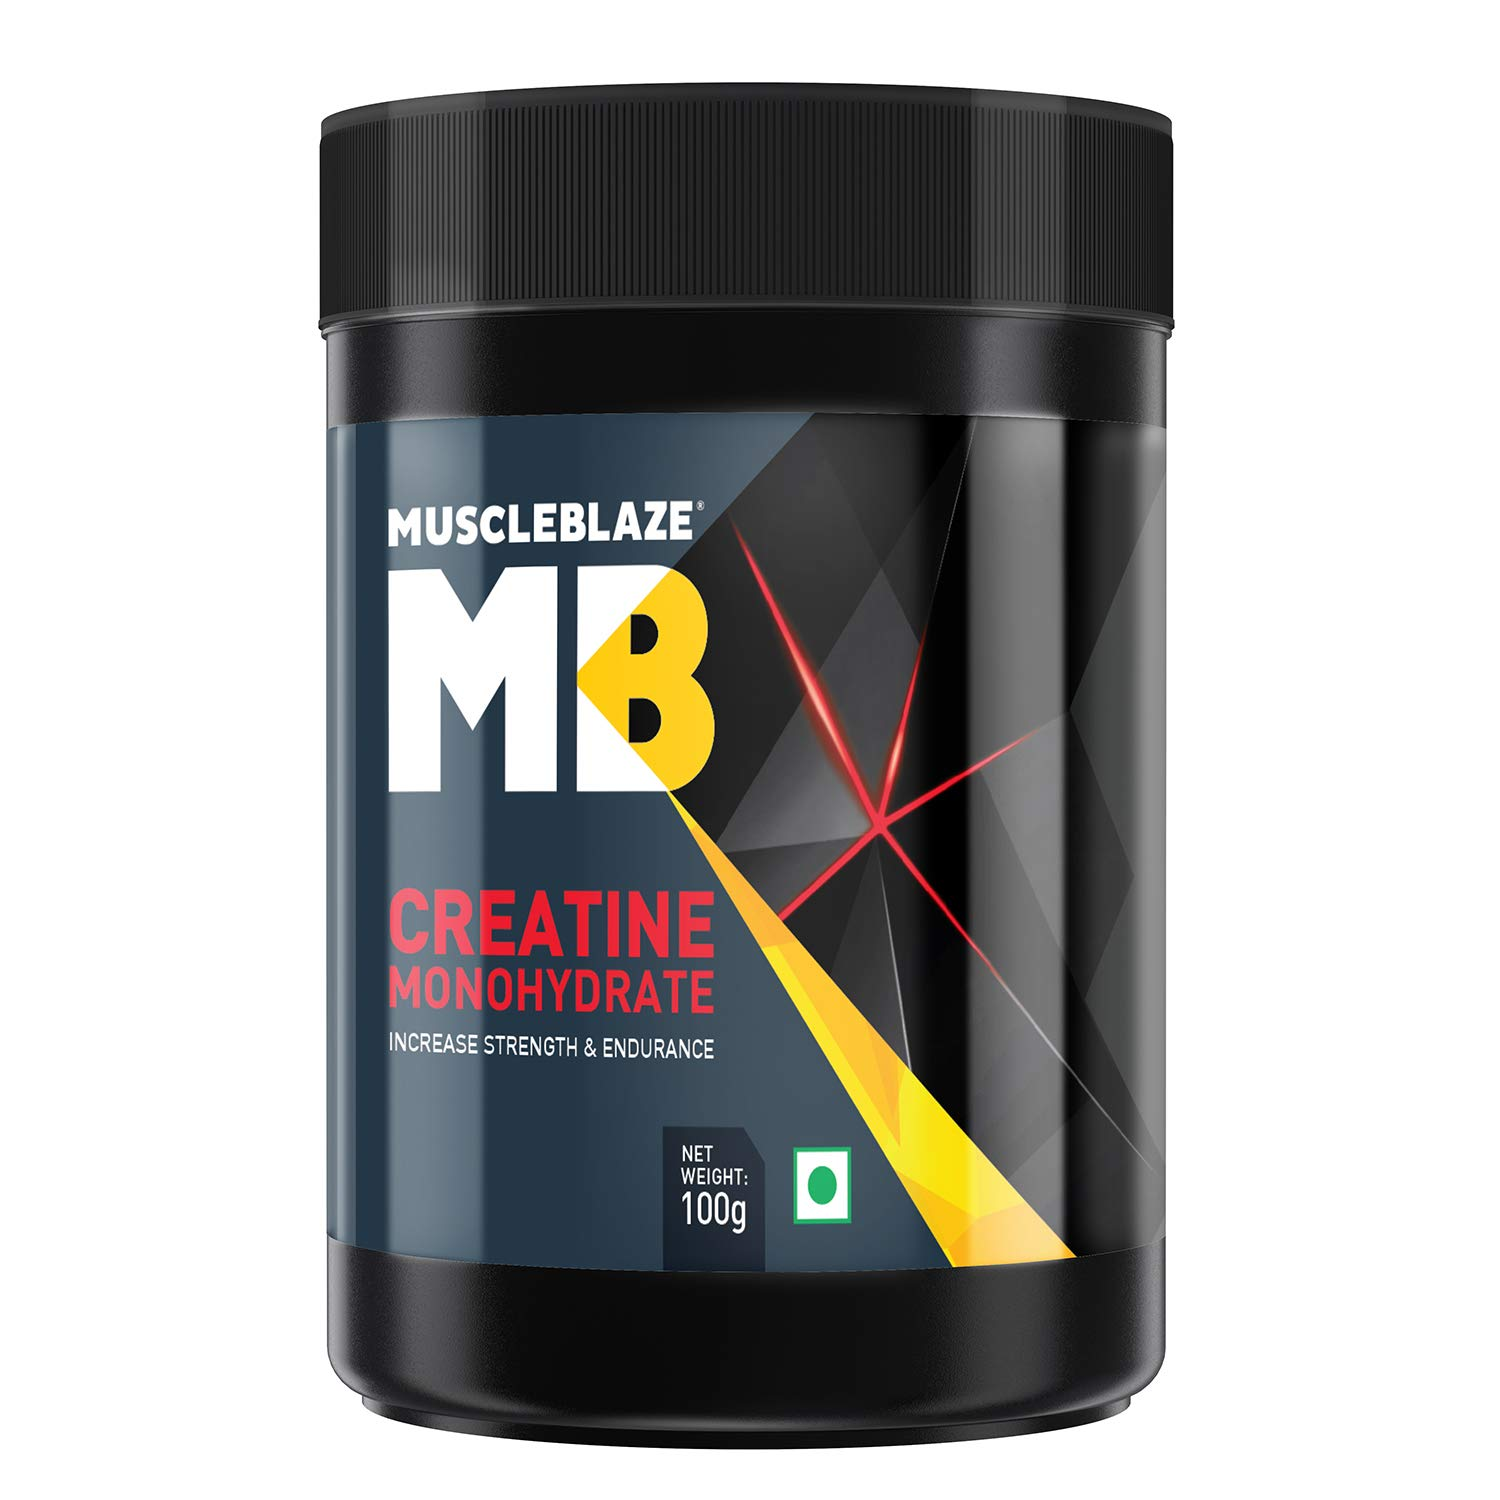 Reasons To Use The Best Creatine